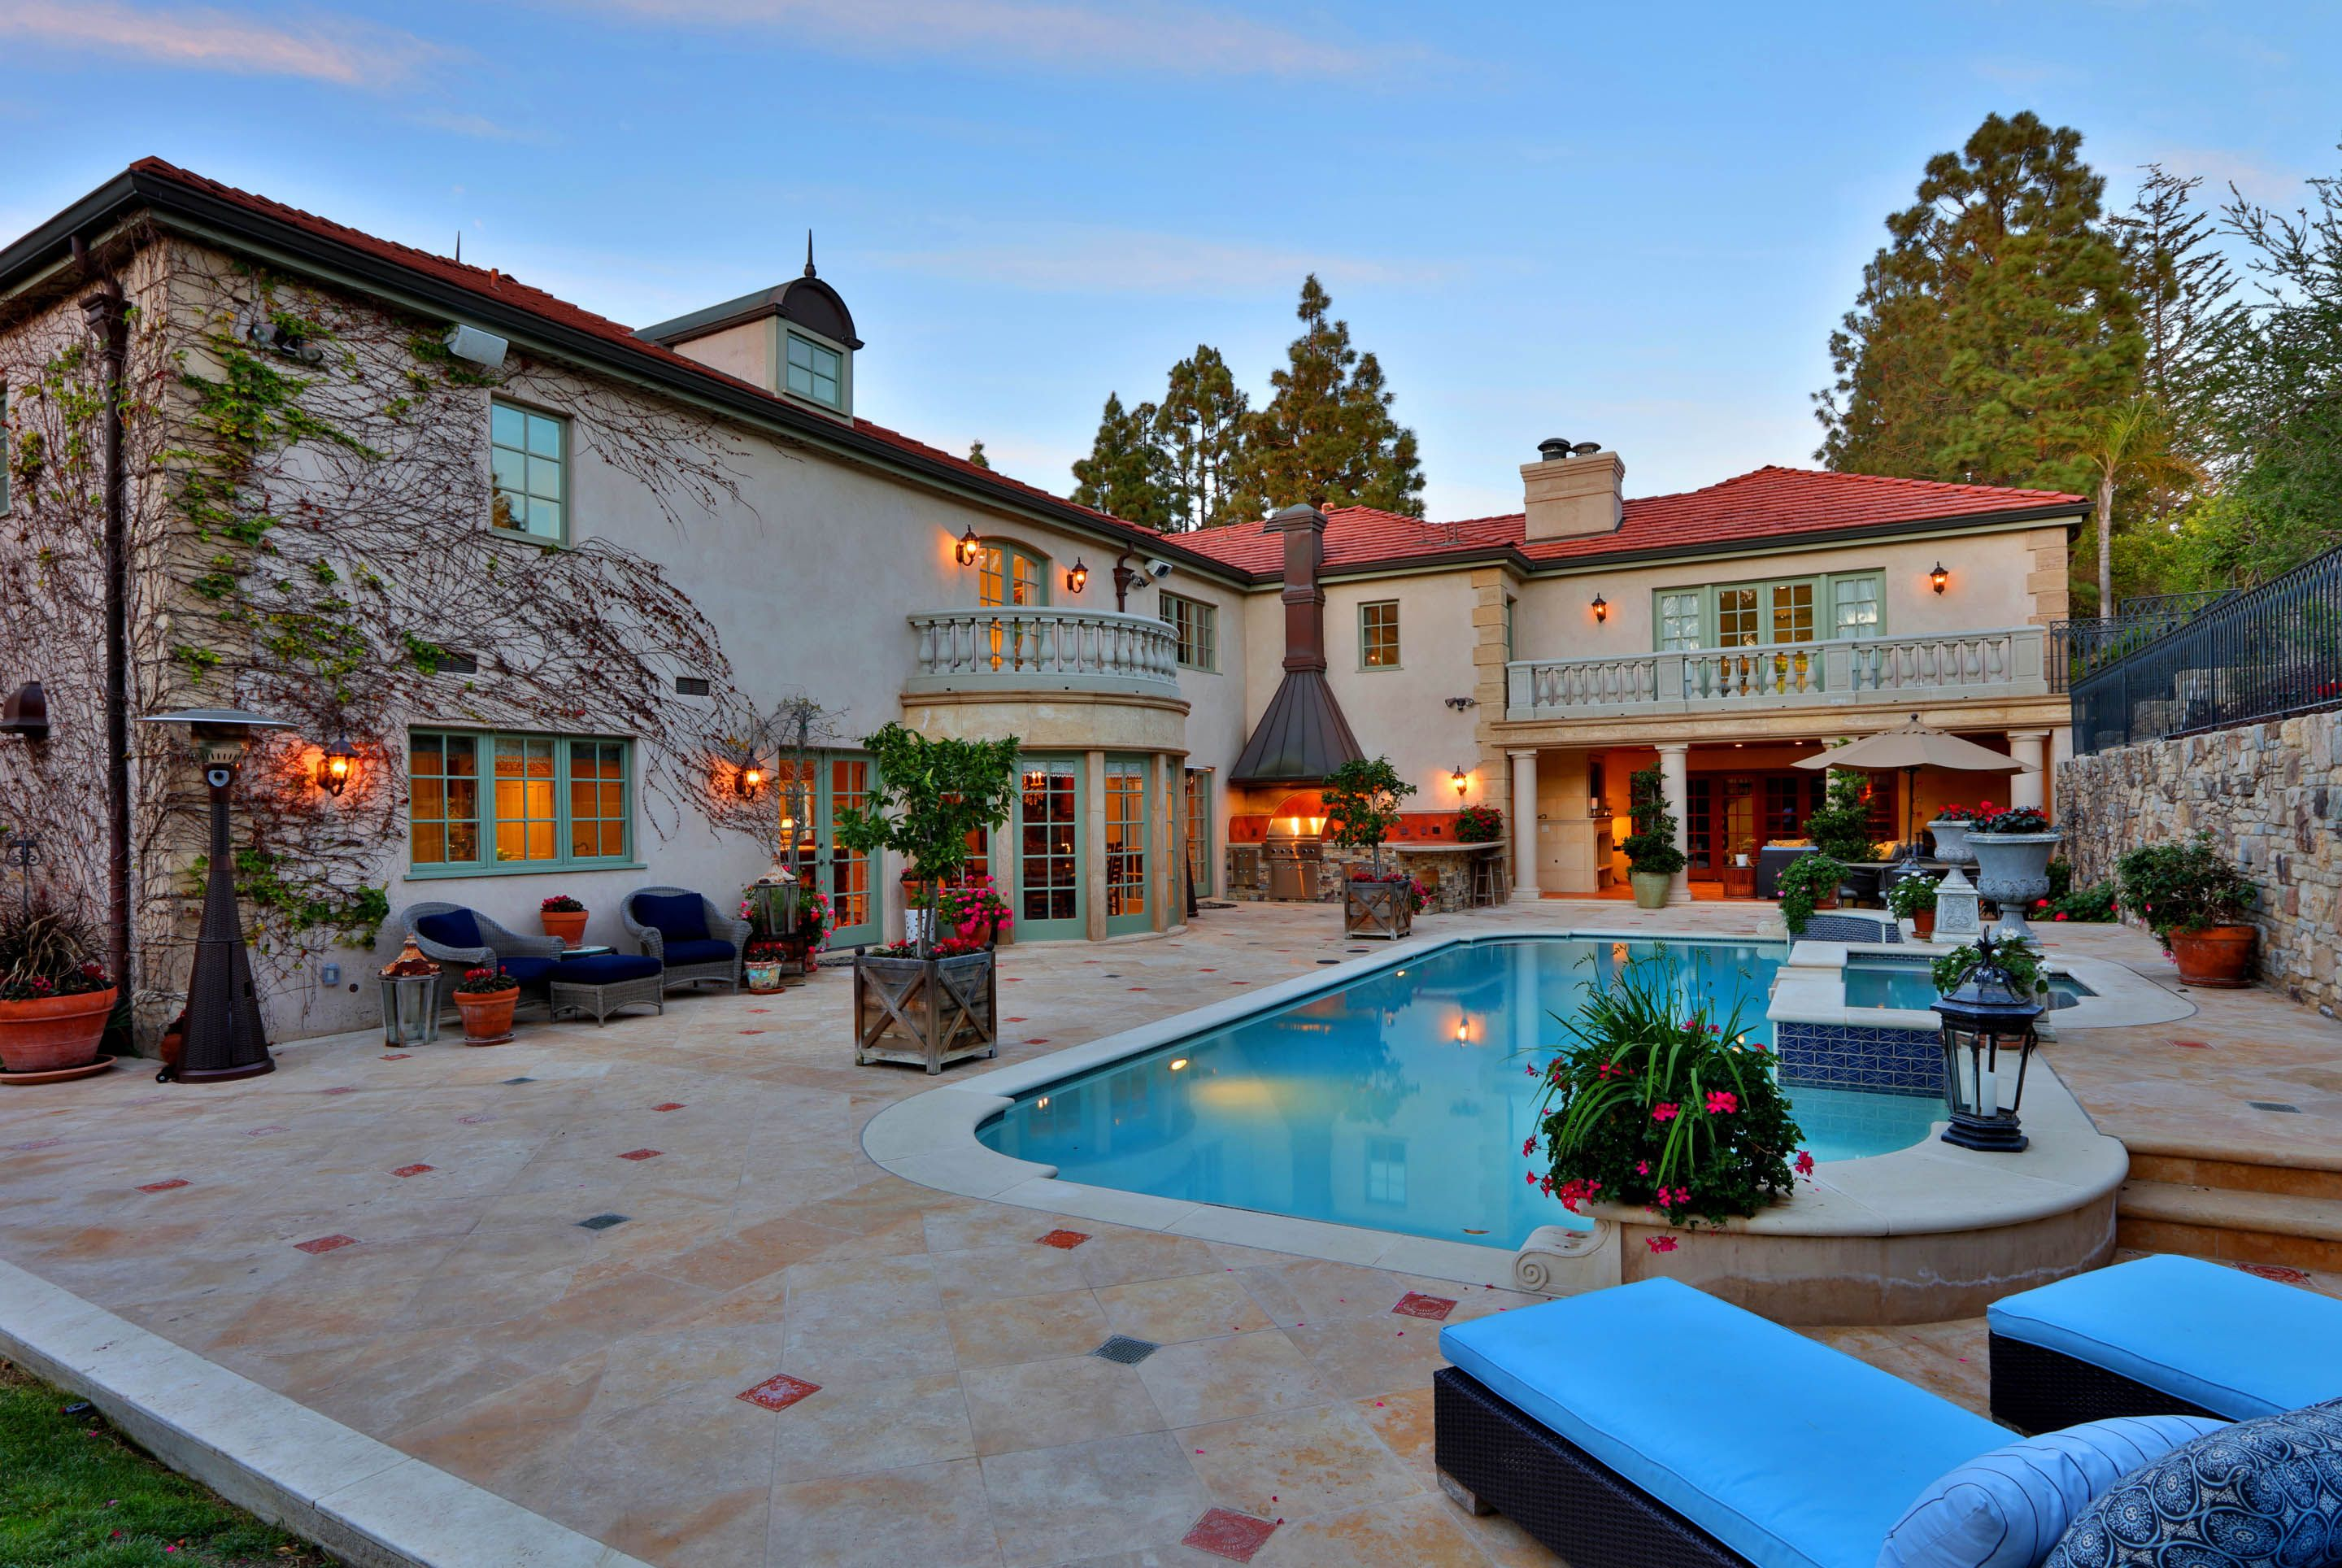 In Ground Swimming Pool W Stone Deck Private Backyard Pool Houses Luxurious Backyard Stone Deck